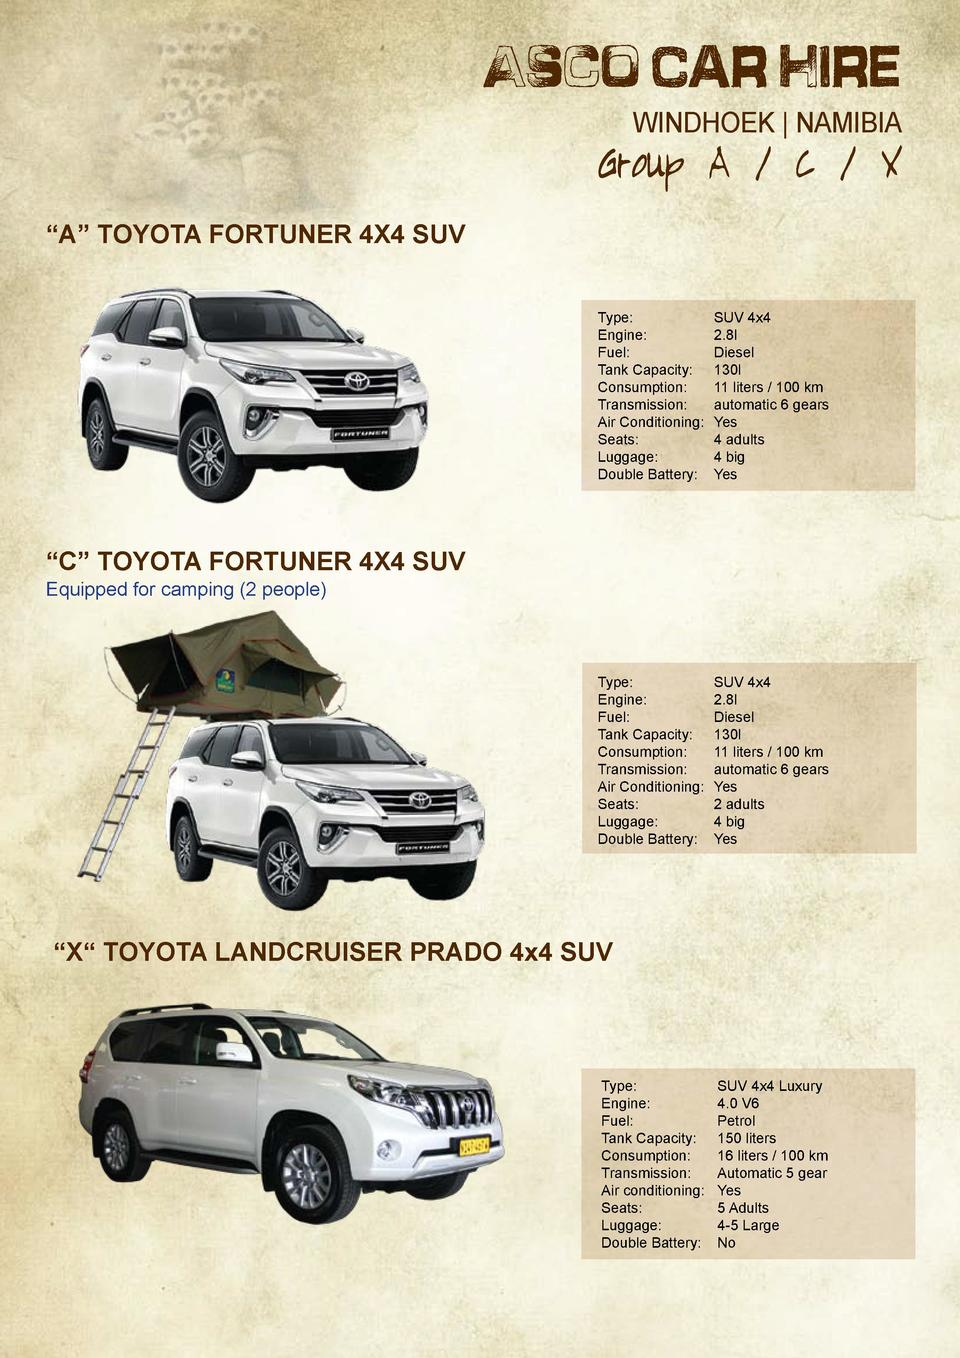 Asco Car Hire WINDHOEK   NAMIBIA  Group A   C   X    A    Toyota Fortuner 4x4 SUV Type     SUV 4x4 Engine     2.8l Fuel   ...